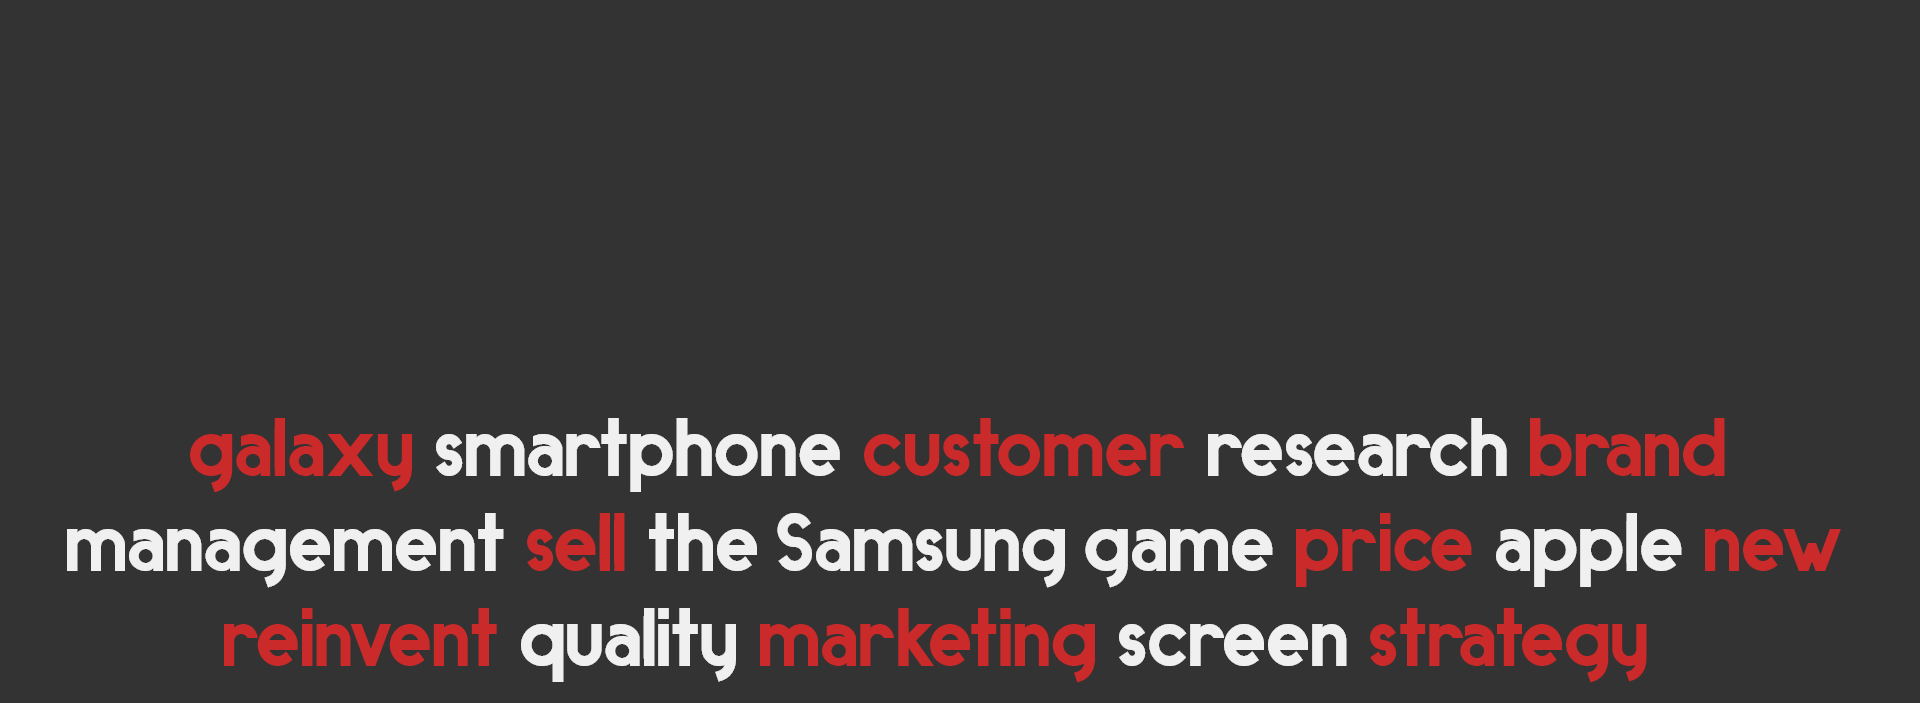 The Samsung Game